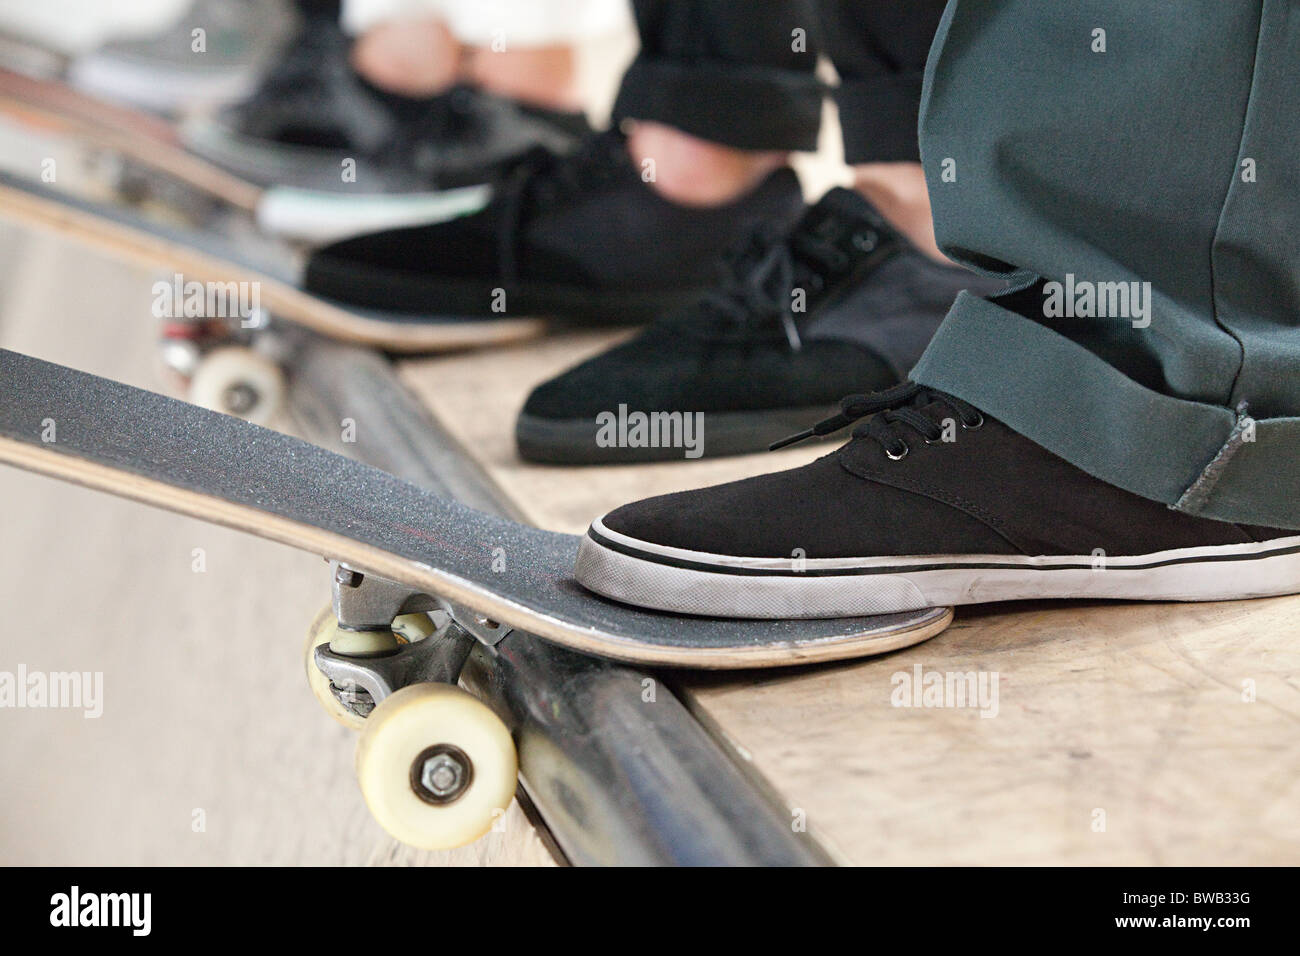 Feet of skaters and boards - Stock Image